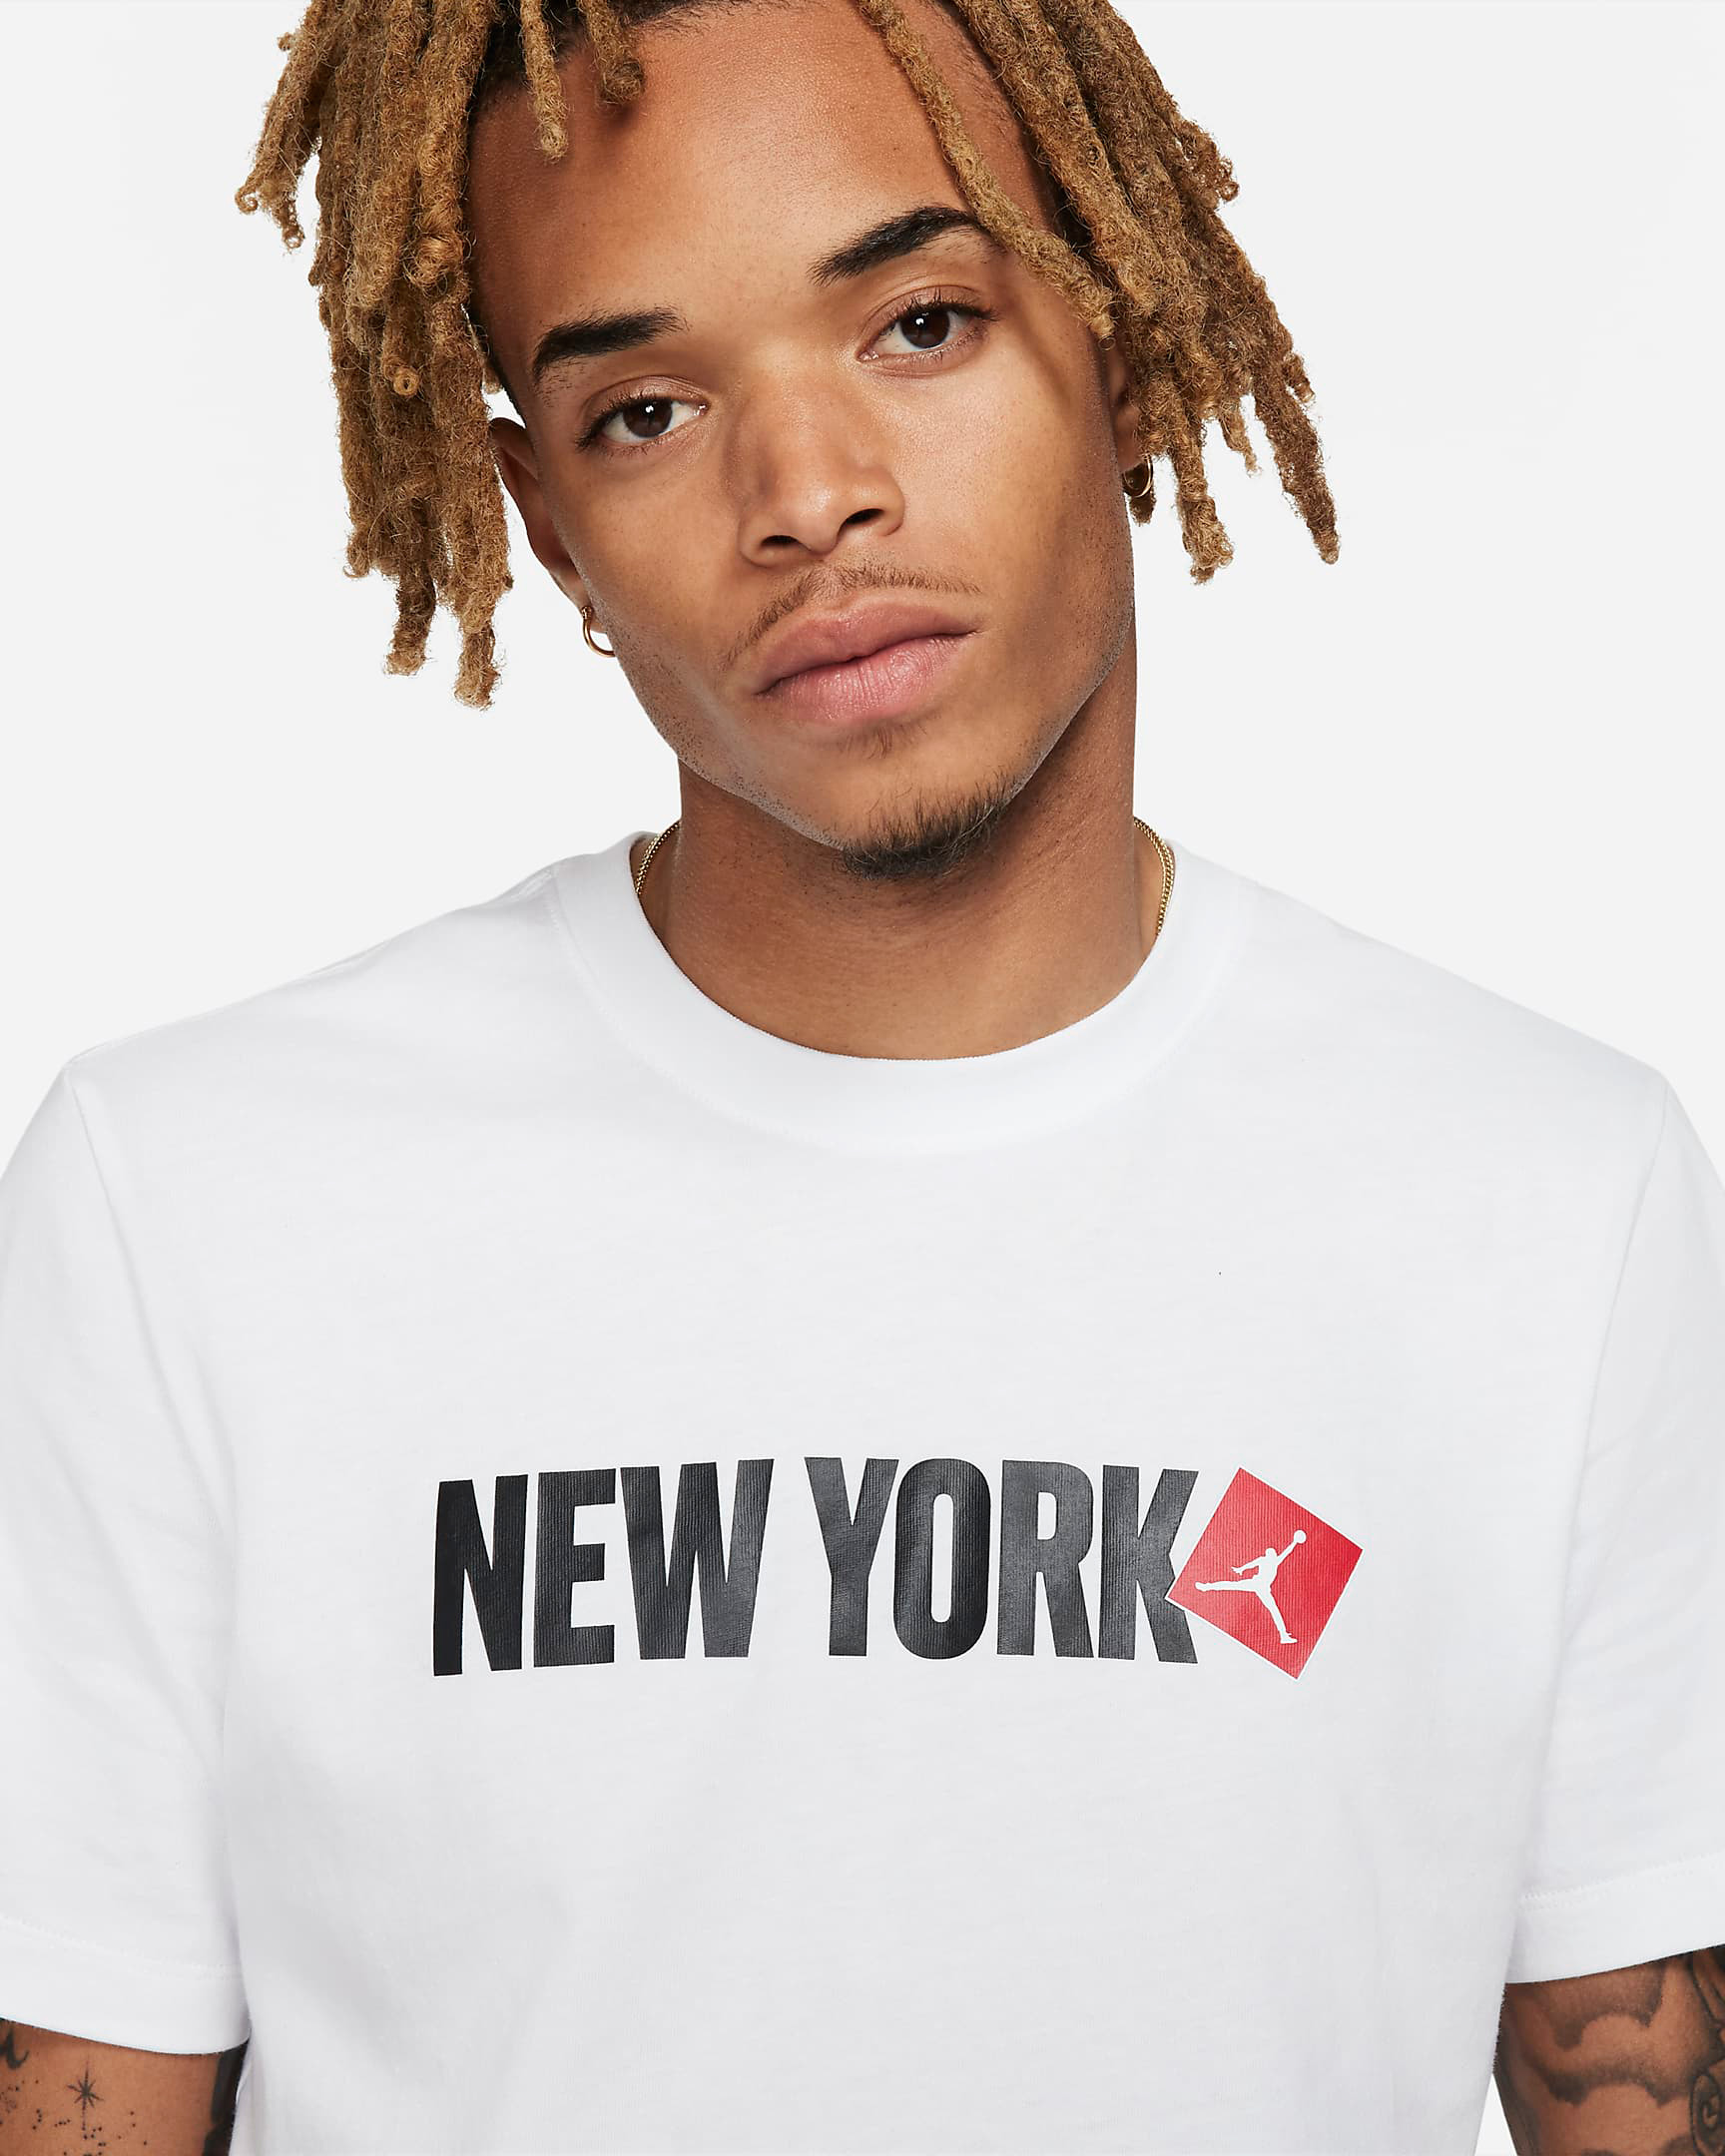 jordan-new-york-city-shirt-white-1